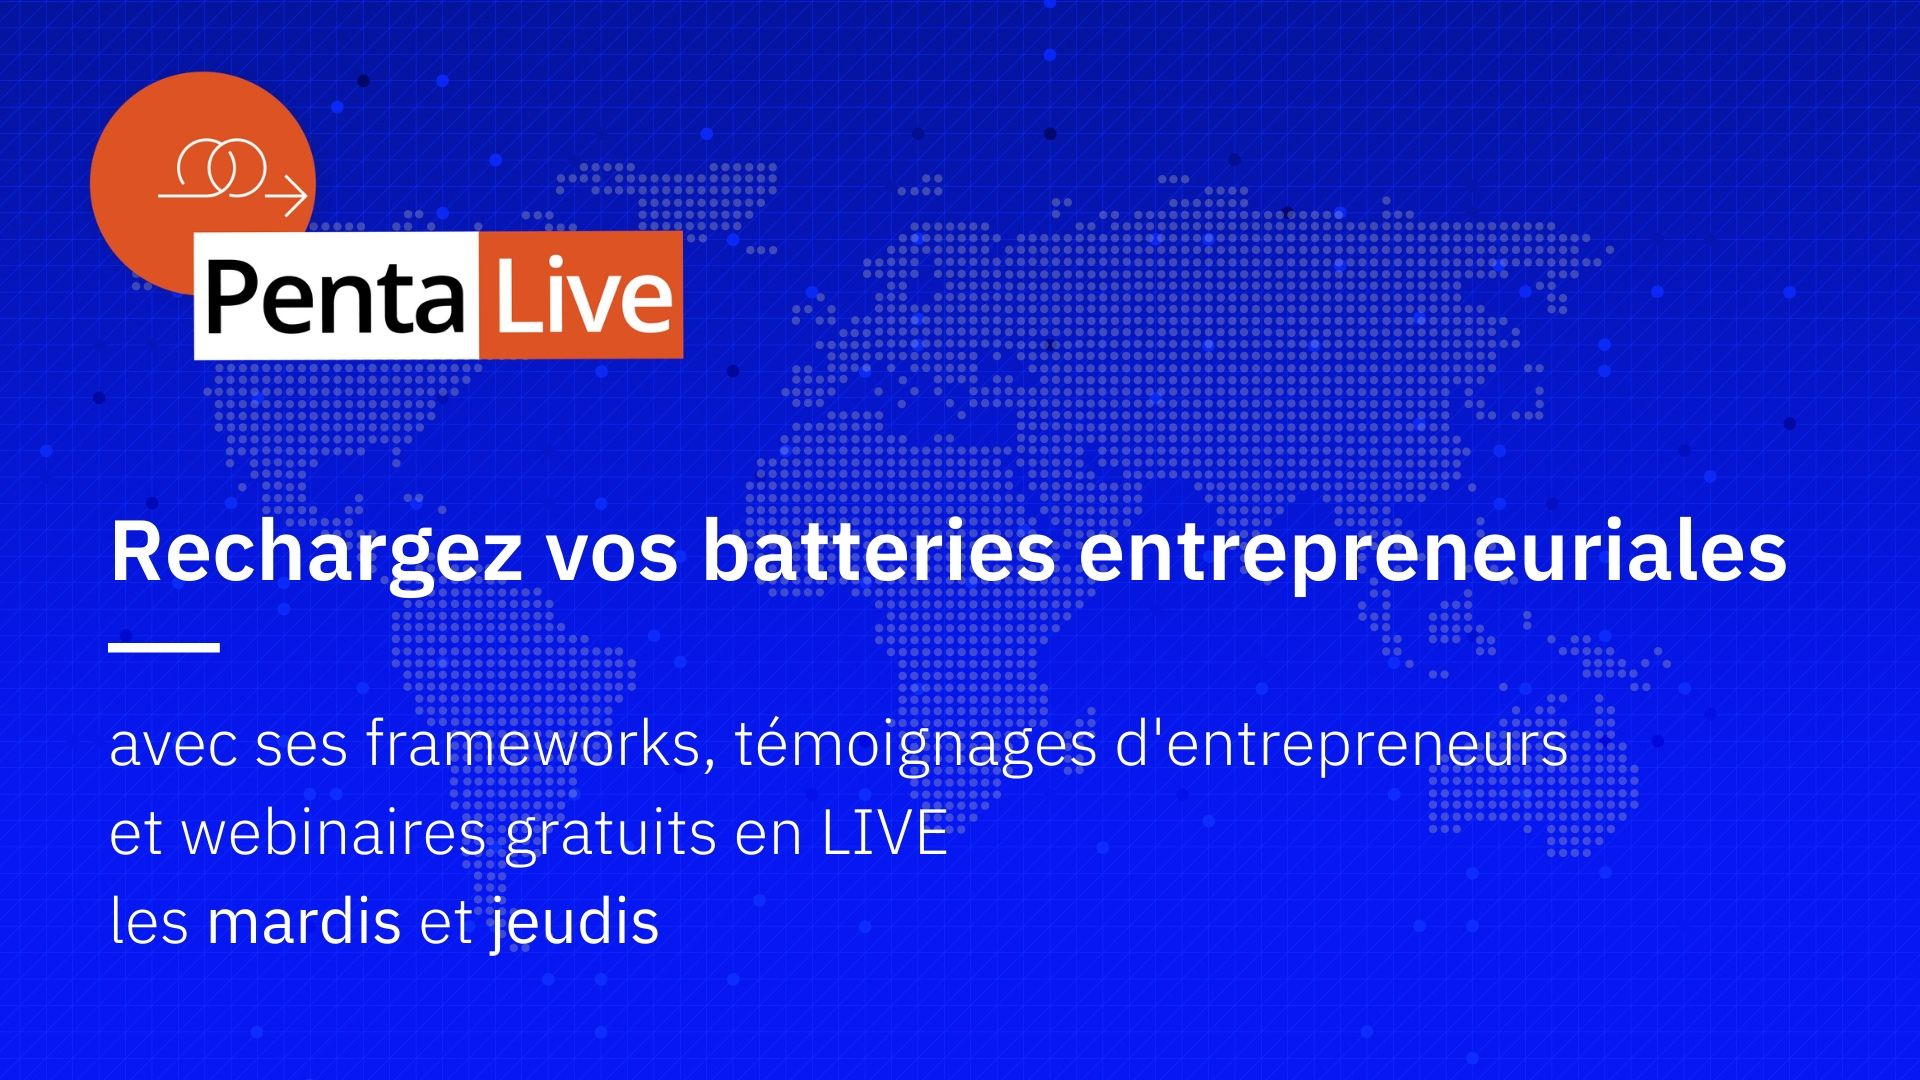 PentaLive : recharger vos batteries